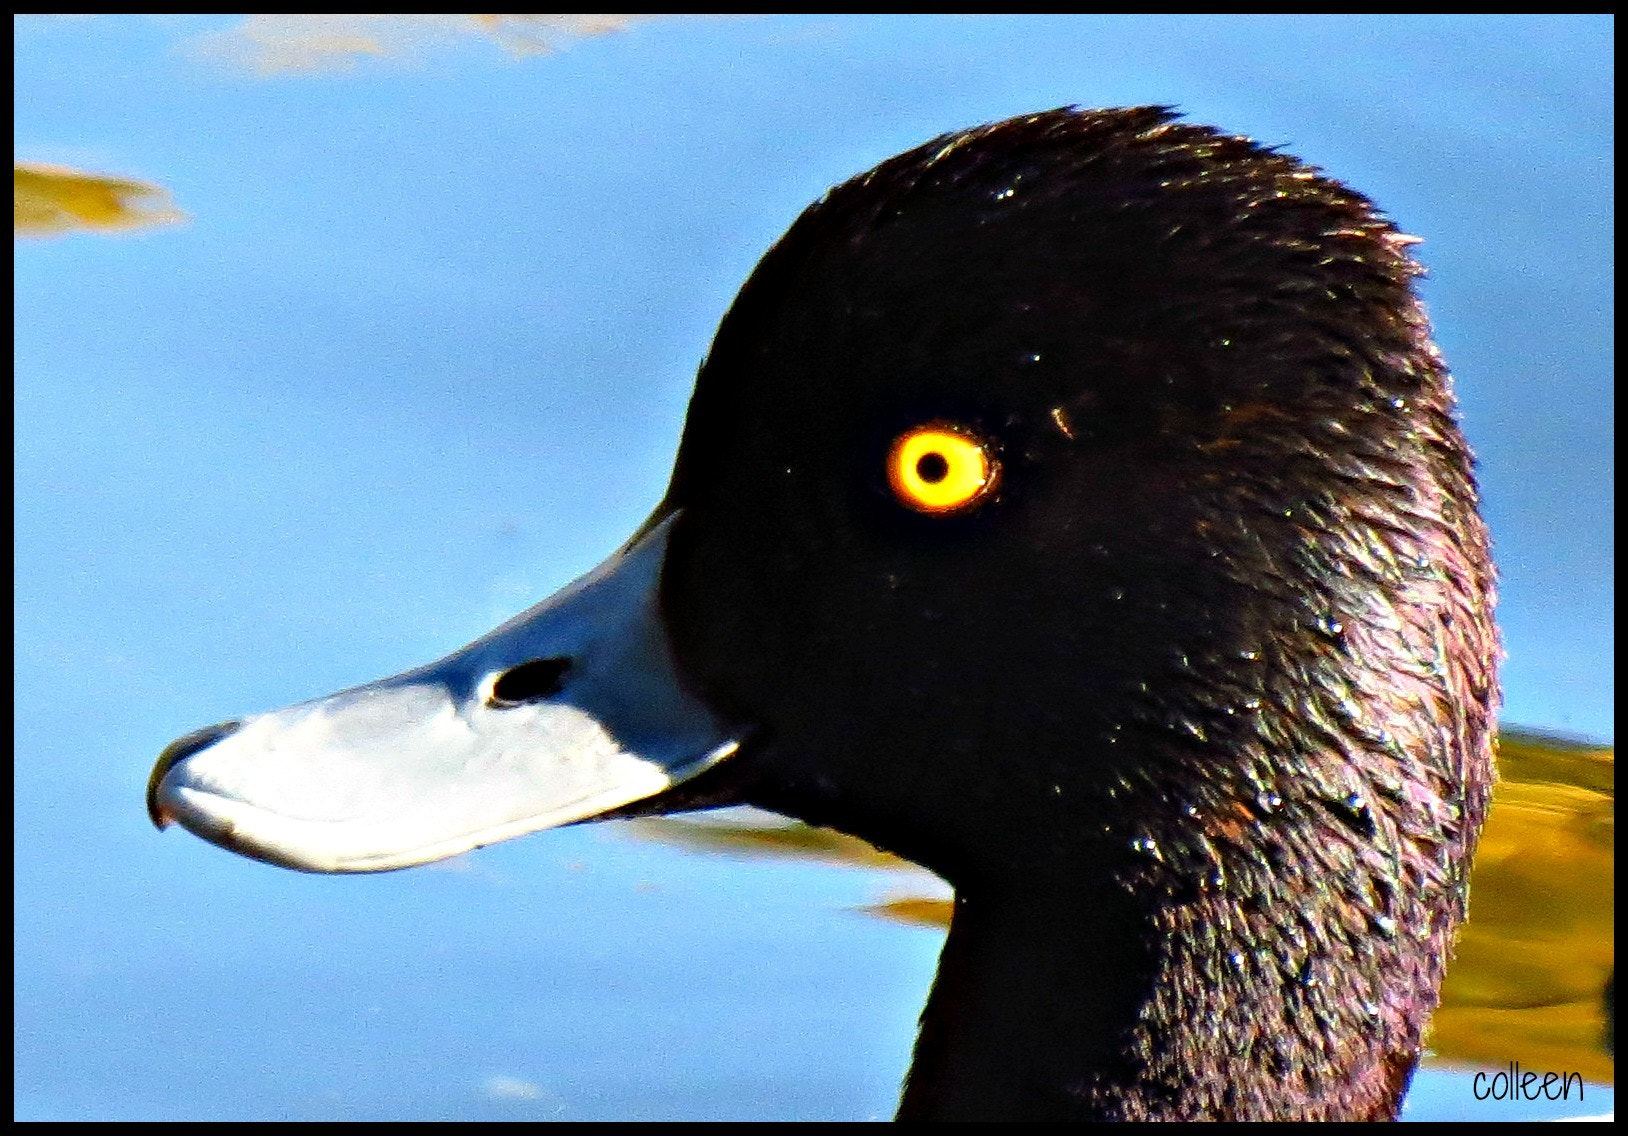 Photograph The Duck With The Golden Eye! by colleen thurgood on 500px